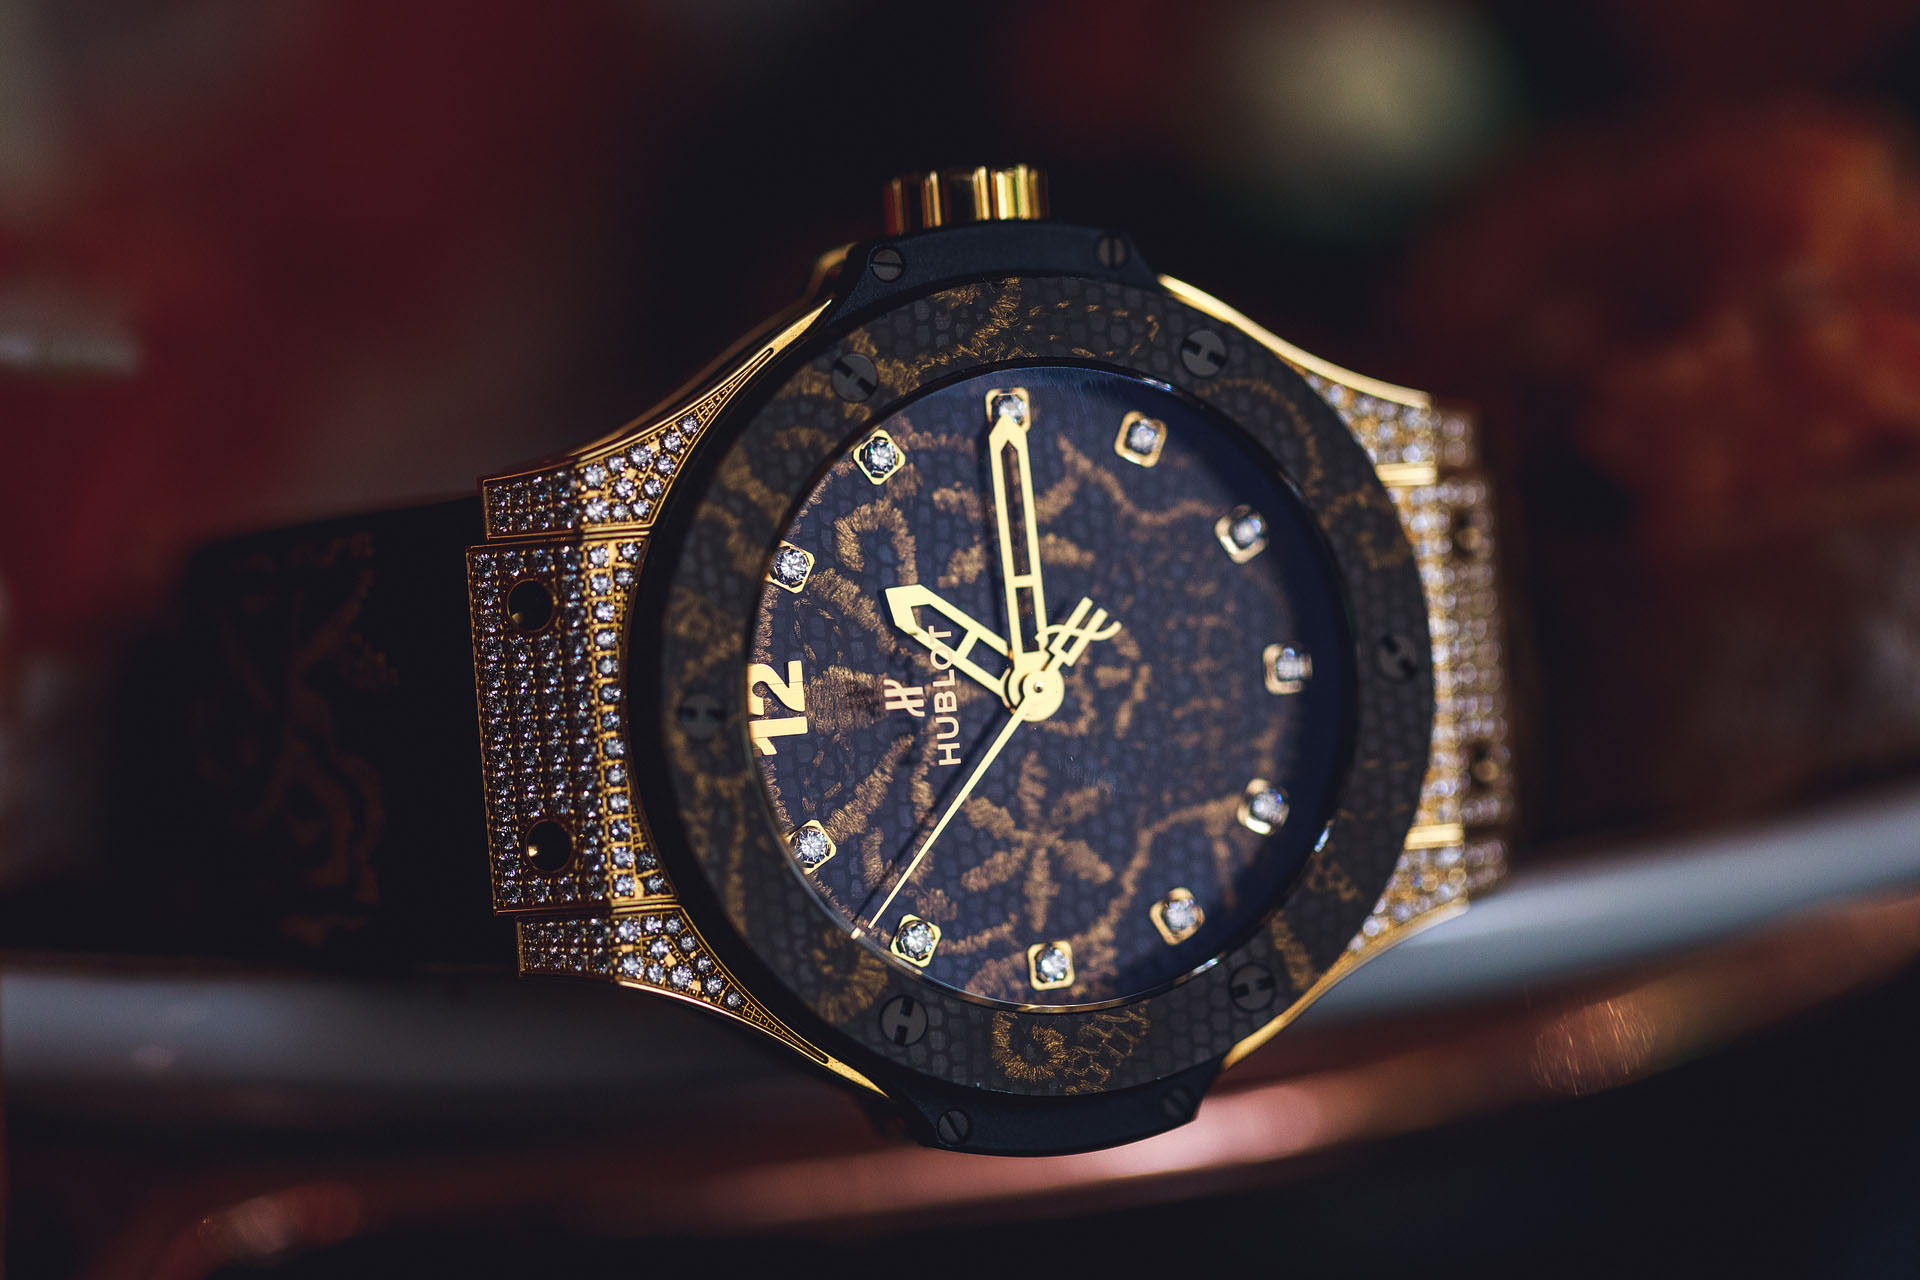 6798 luxury watch lifestyle photography